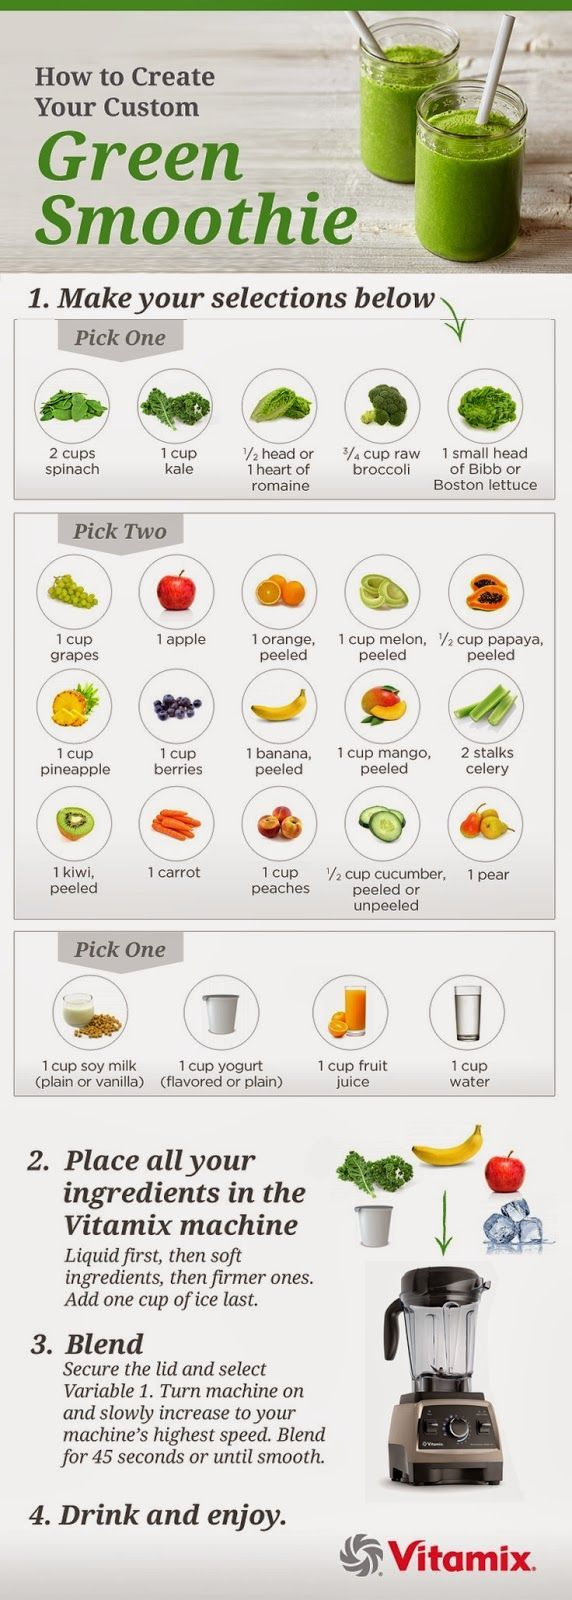 All You Need to Lose Weight: Smoothie Recipe #kombuchaguru #juicing Also check out: http://kombuchaguru.com